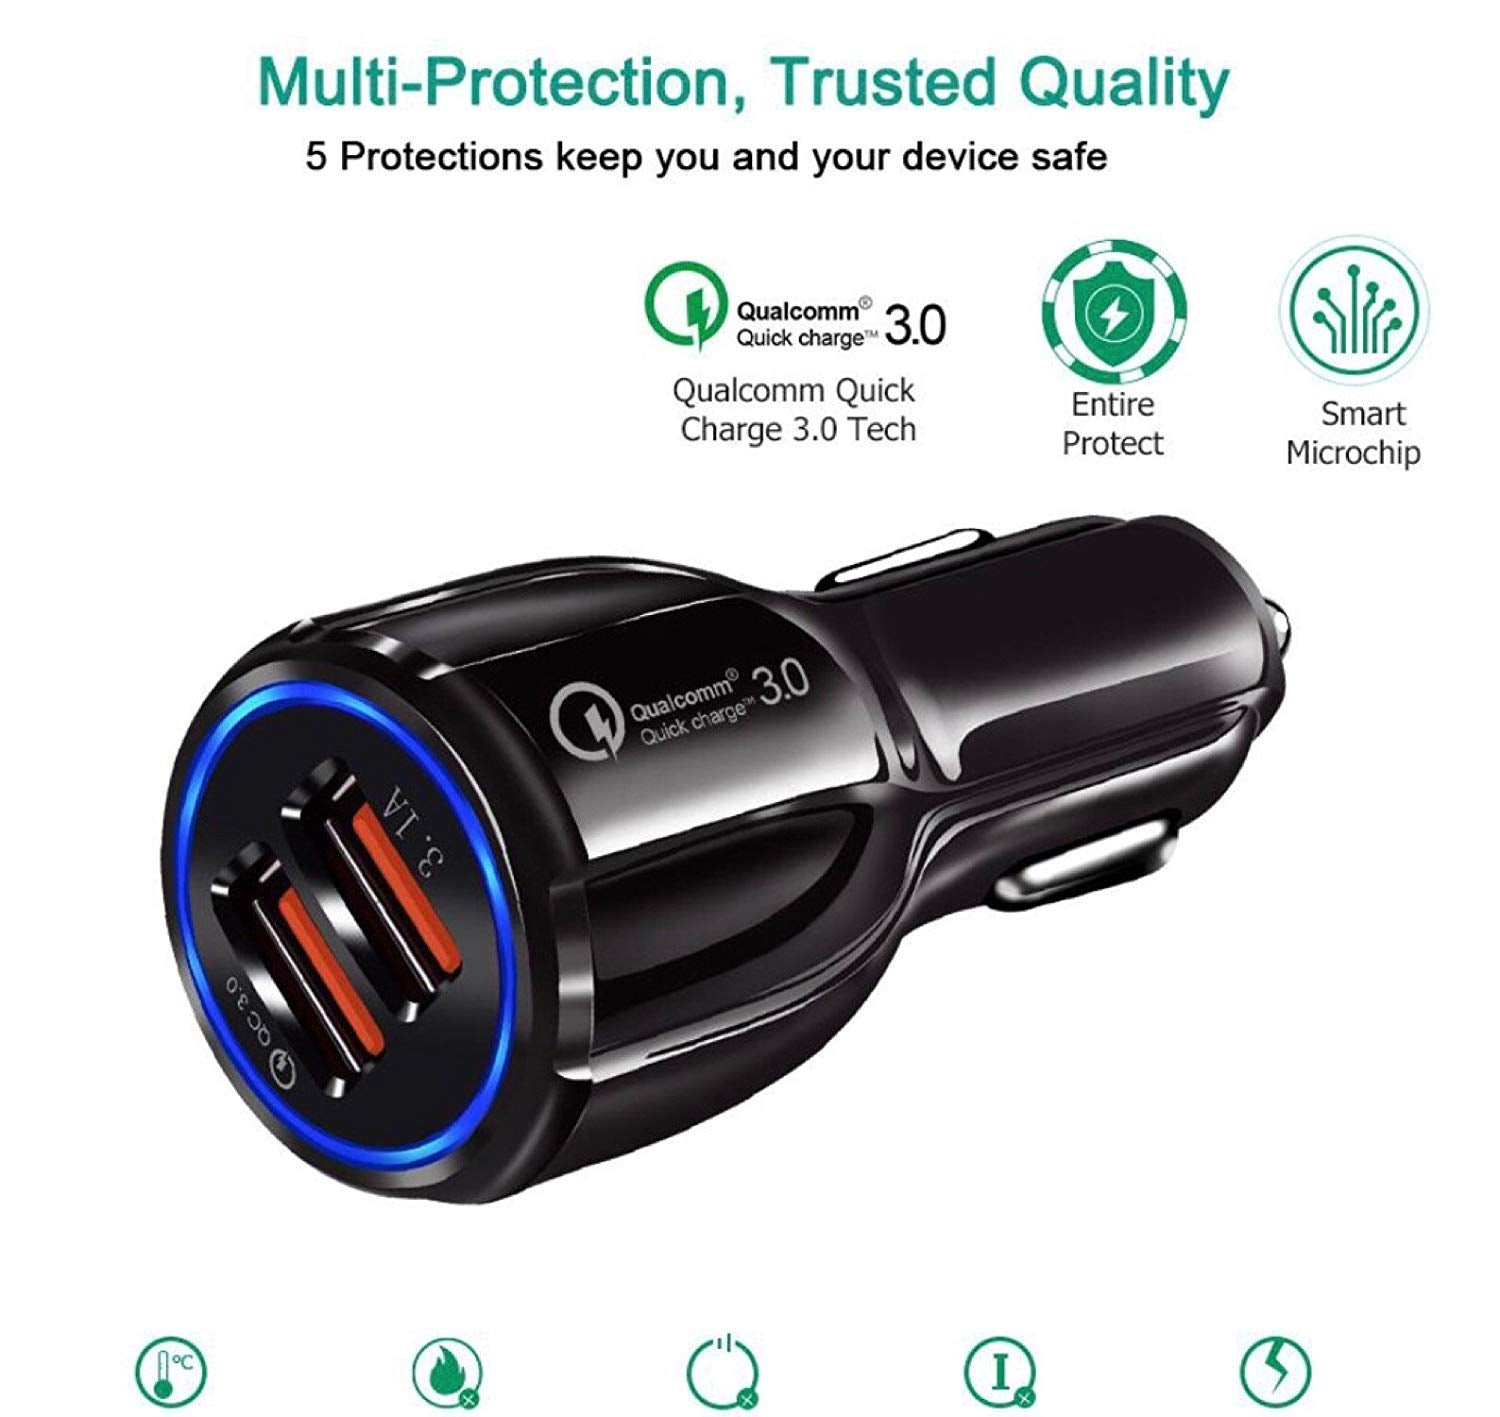 Car Charger with Quick Charge 3.0, 39W Dual Ports 6A for Samsung Galaxy Note8 / S9 / S8 / S8+, LG G6 / V30, HTC 10 and More